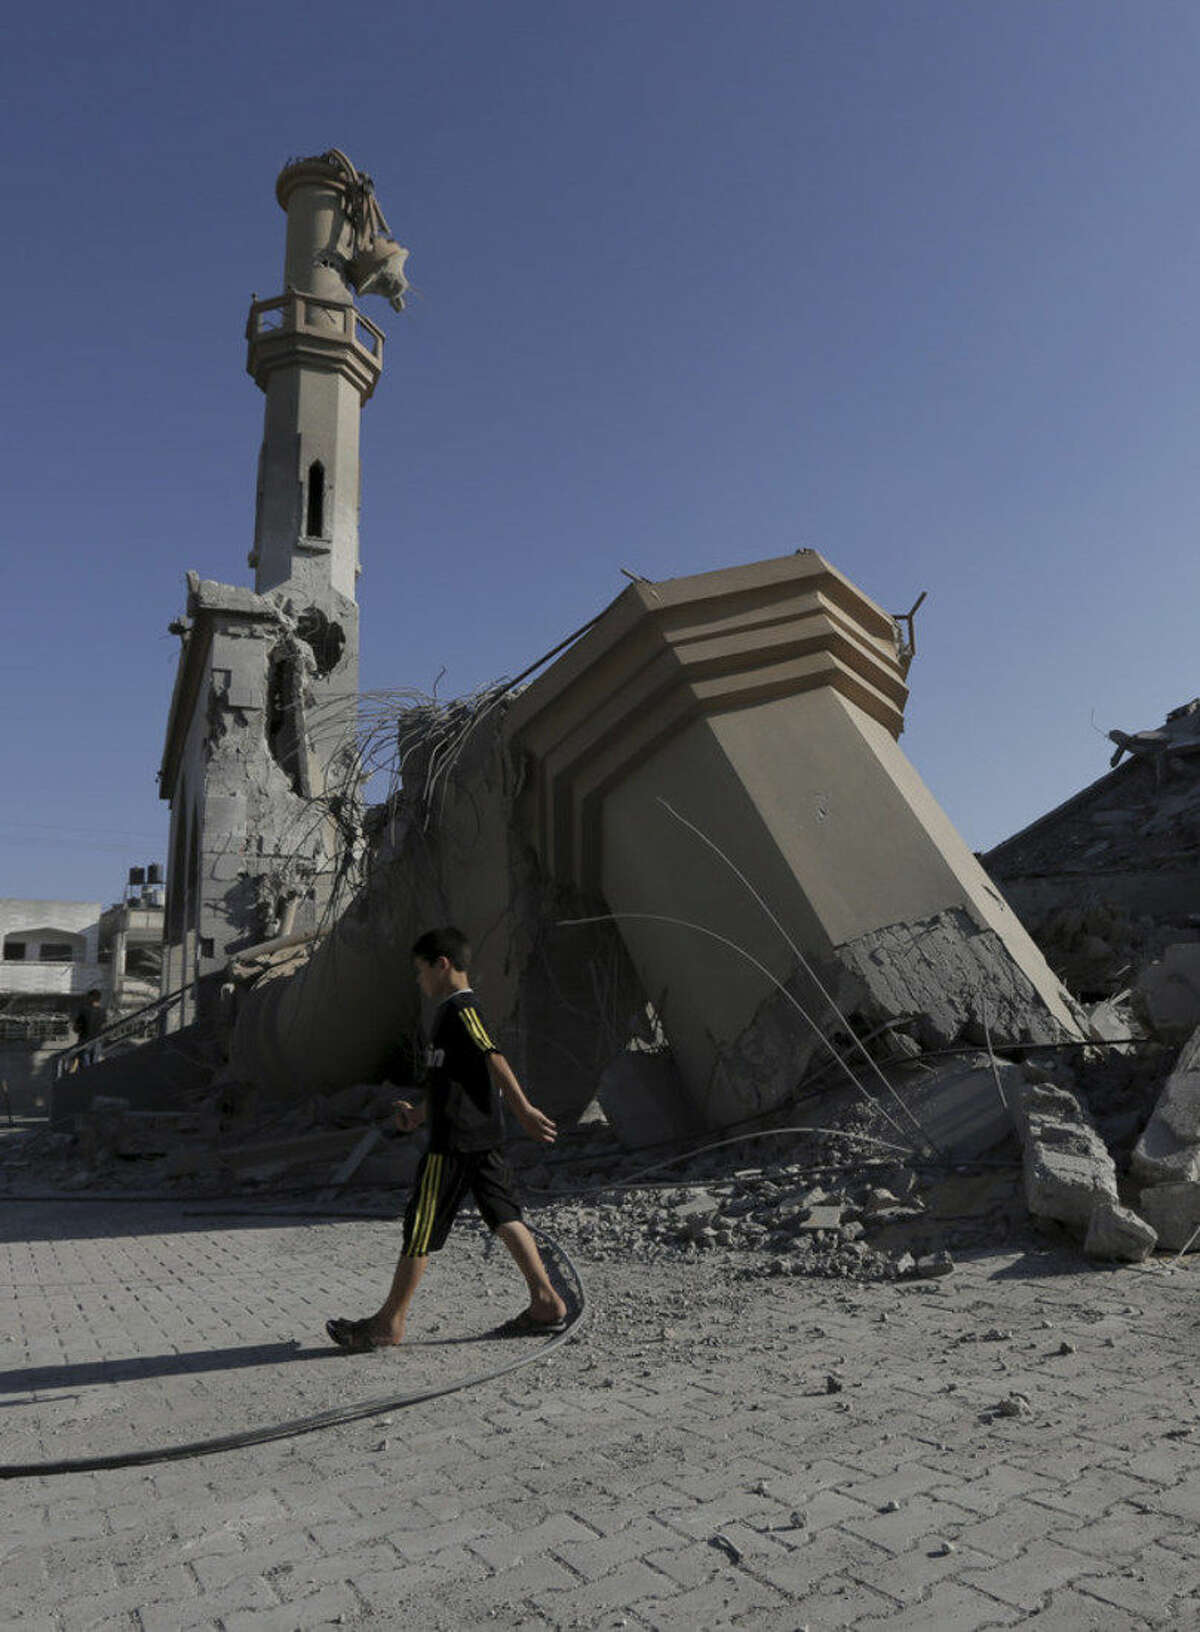 A Palestinian boy walks on the rubble of Omar Ibn Abed Al-Aziz mosque, which was hit by an Israeli strikes in Beit Hanoun, in the northern Gaza Strip, Wednesday, Aug. 27, 2014. The third Gaza War in six years appears to have ended in another sort of tie, with both Israel and Hamas claiming the upper hand. Their questionable achievements have come at a big price, especially to long-suffering Palestinians in Gaza. (AP Photo/Adel Hana)